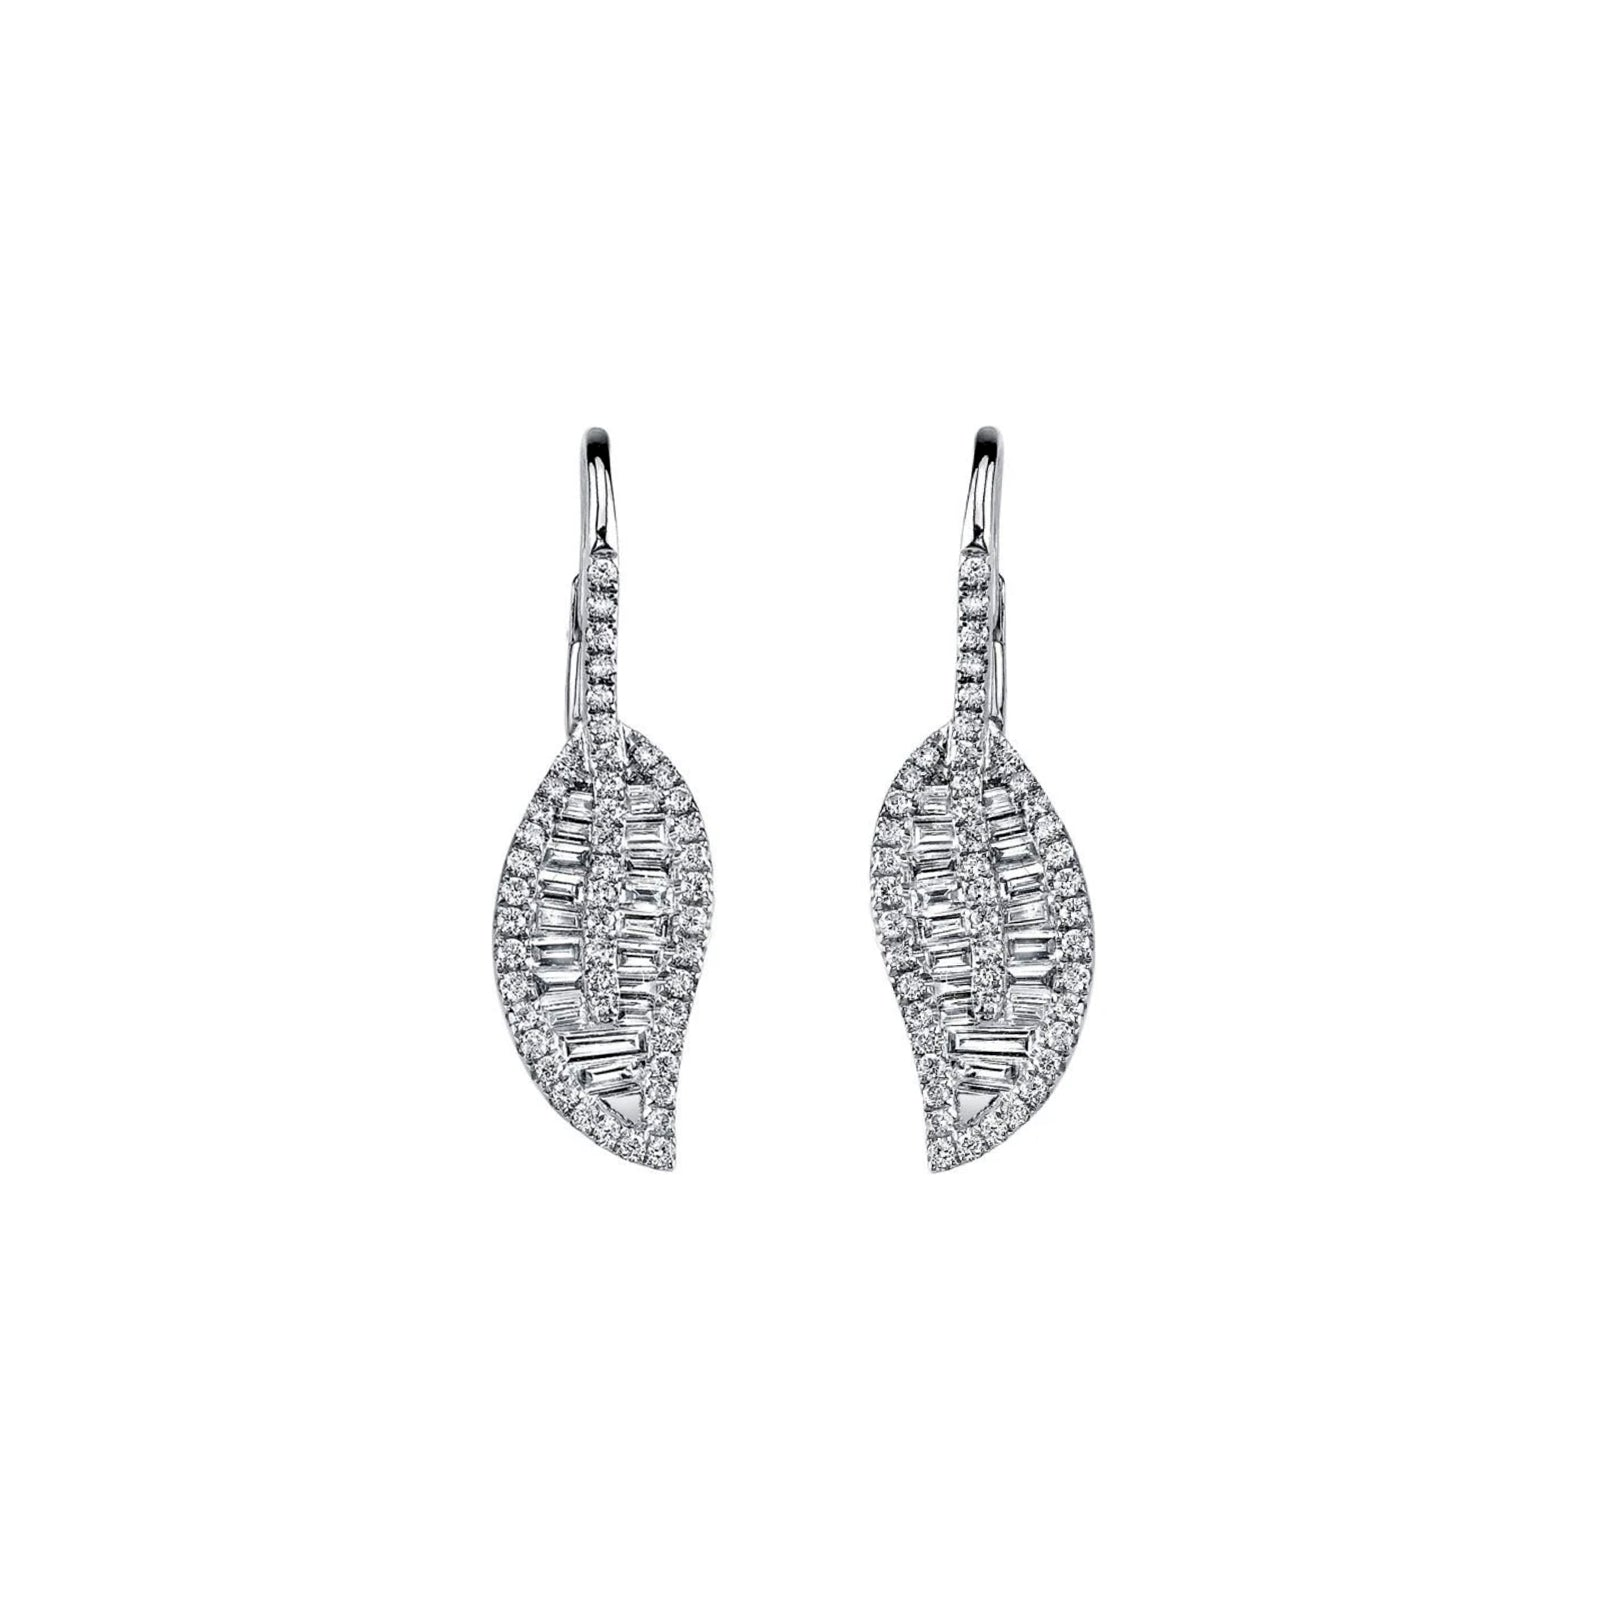 Anita Ko Leaf Drop Earrings - Earrings - Broken English Jewelry